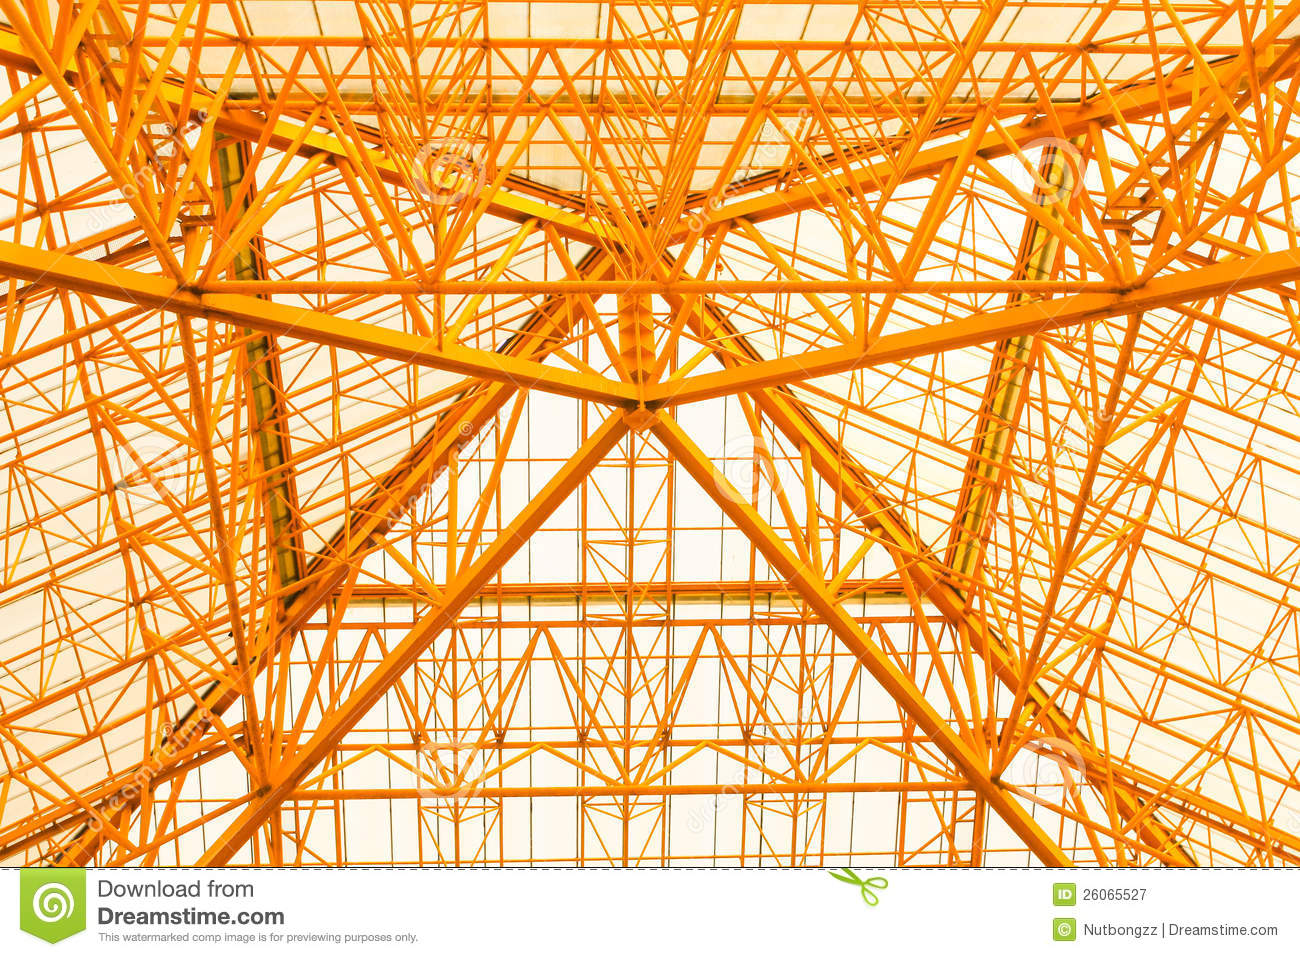 Building Structure Royalty Free Stock Photography - Image: 26065527